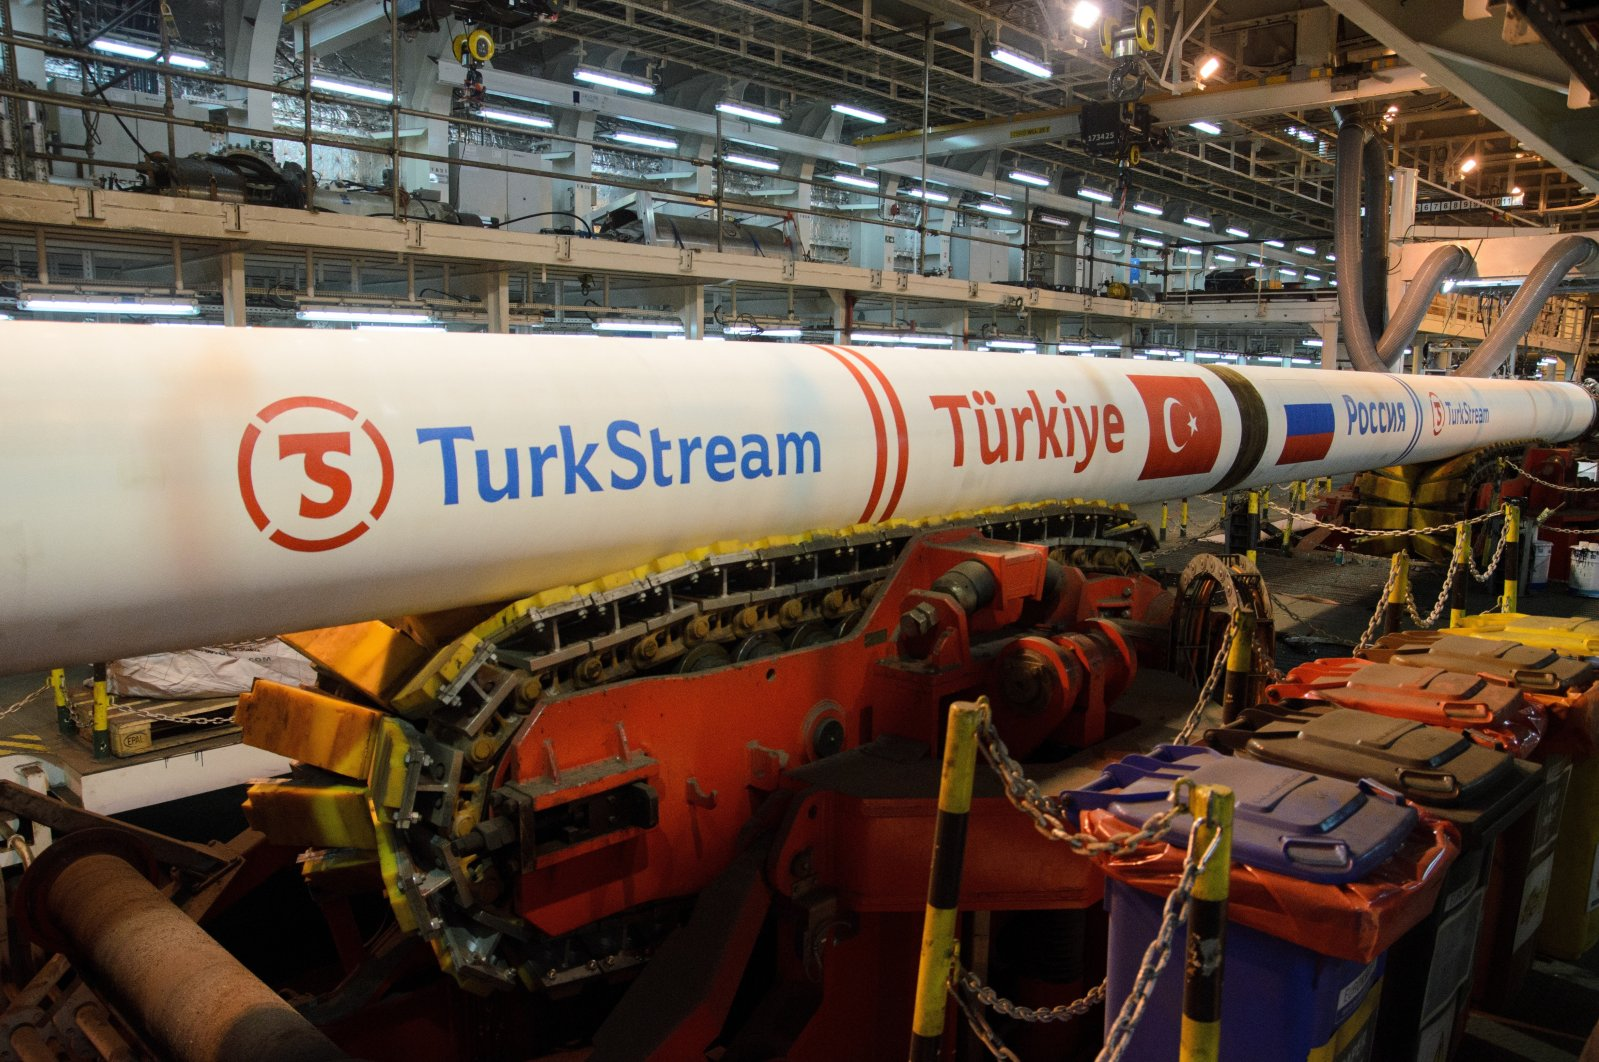 Commercial supplies via the TurkStream gas pipeline commenced in January 2020. (IHA Photo)